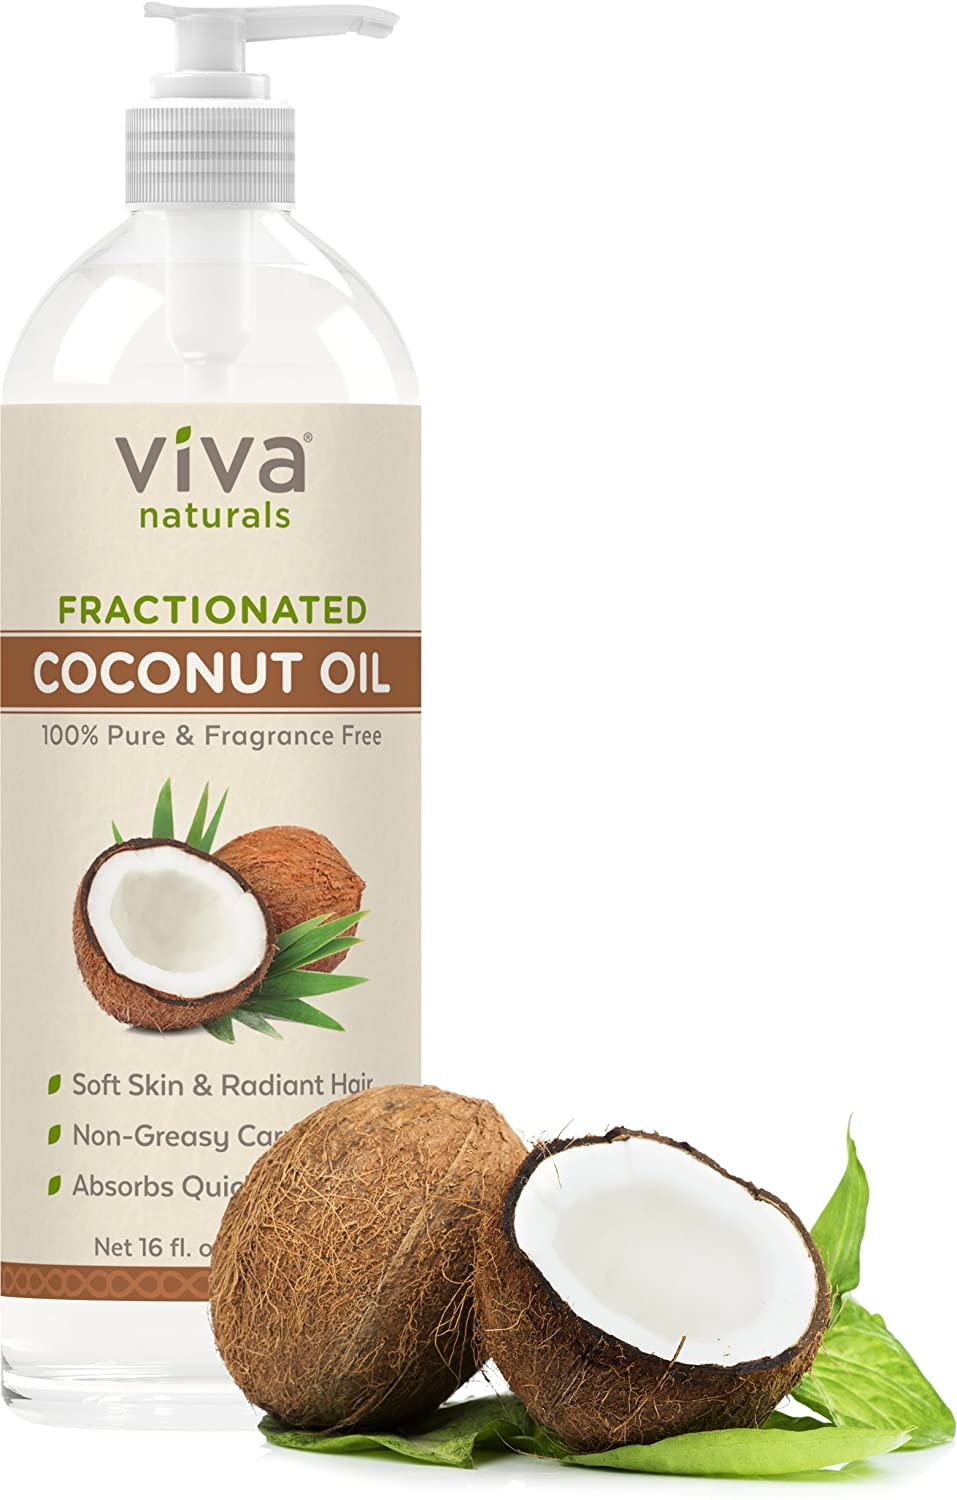 Viva Naturals Fractionated Coconut Oil, 16 oz - Ultra Hydrating, Hexane-Free